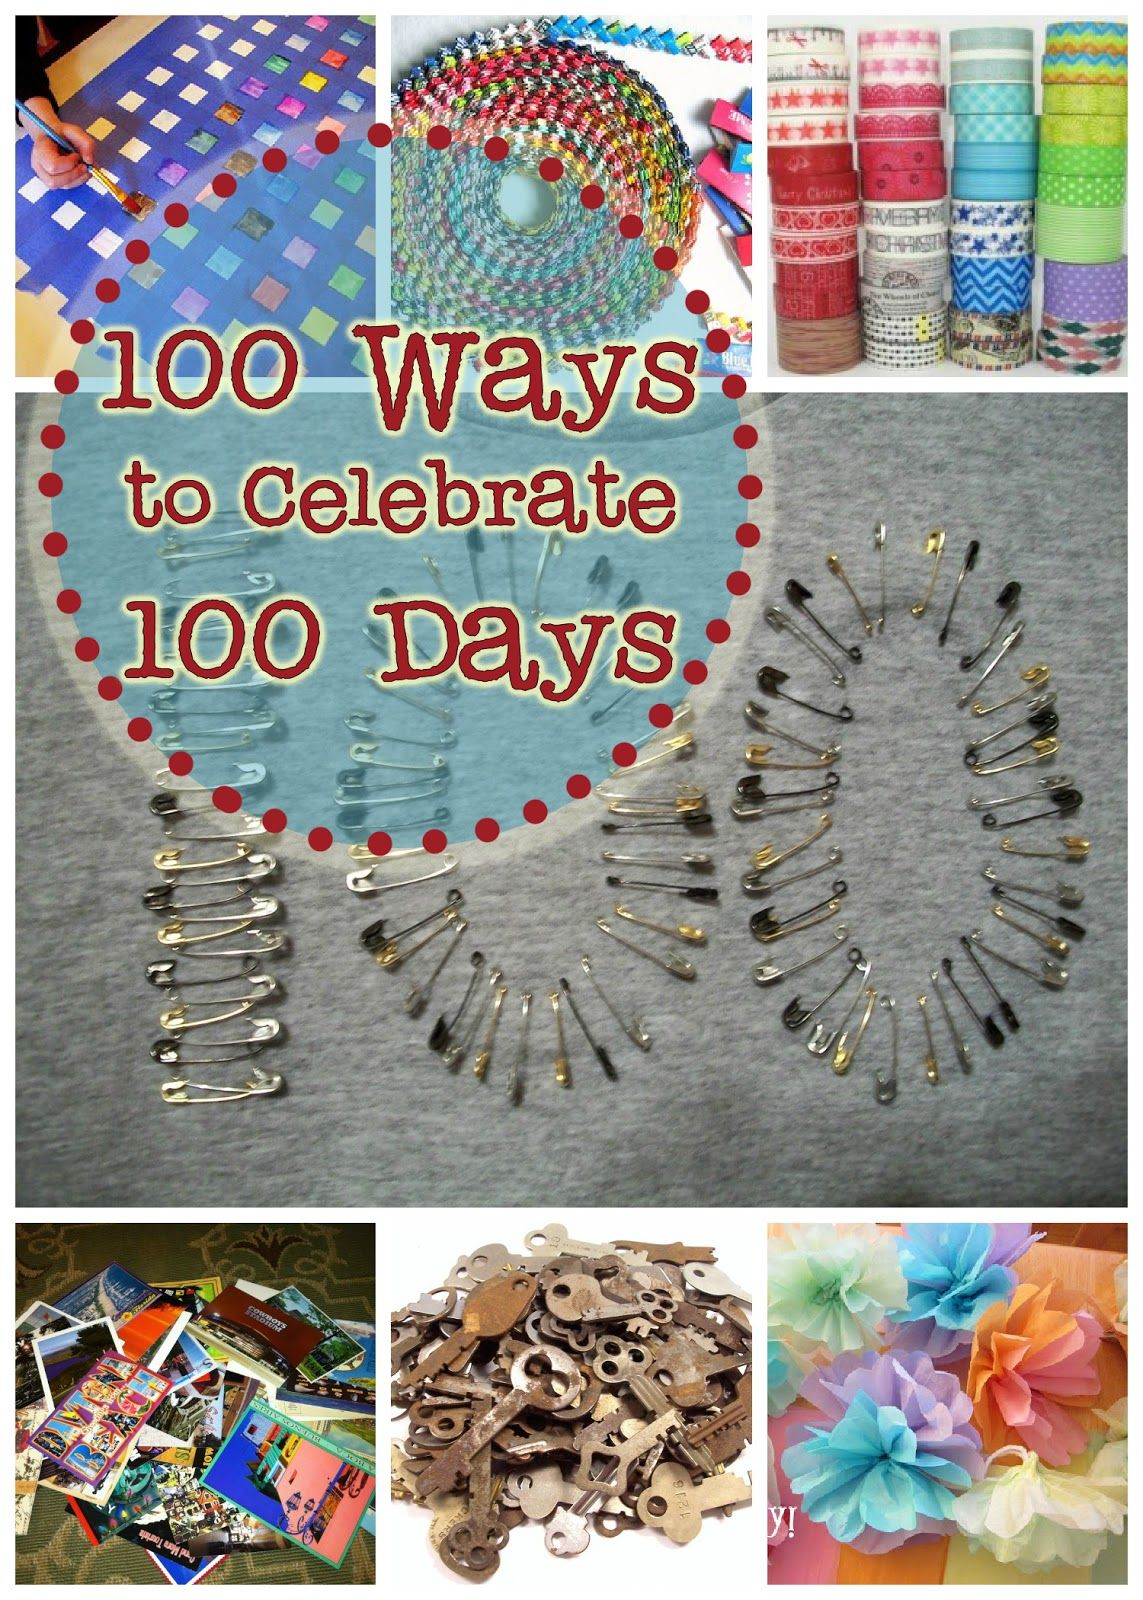 100 Ways to Celebrate 100 Days | A collection of project ideas for ...